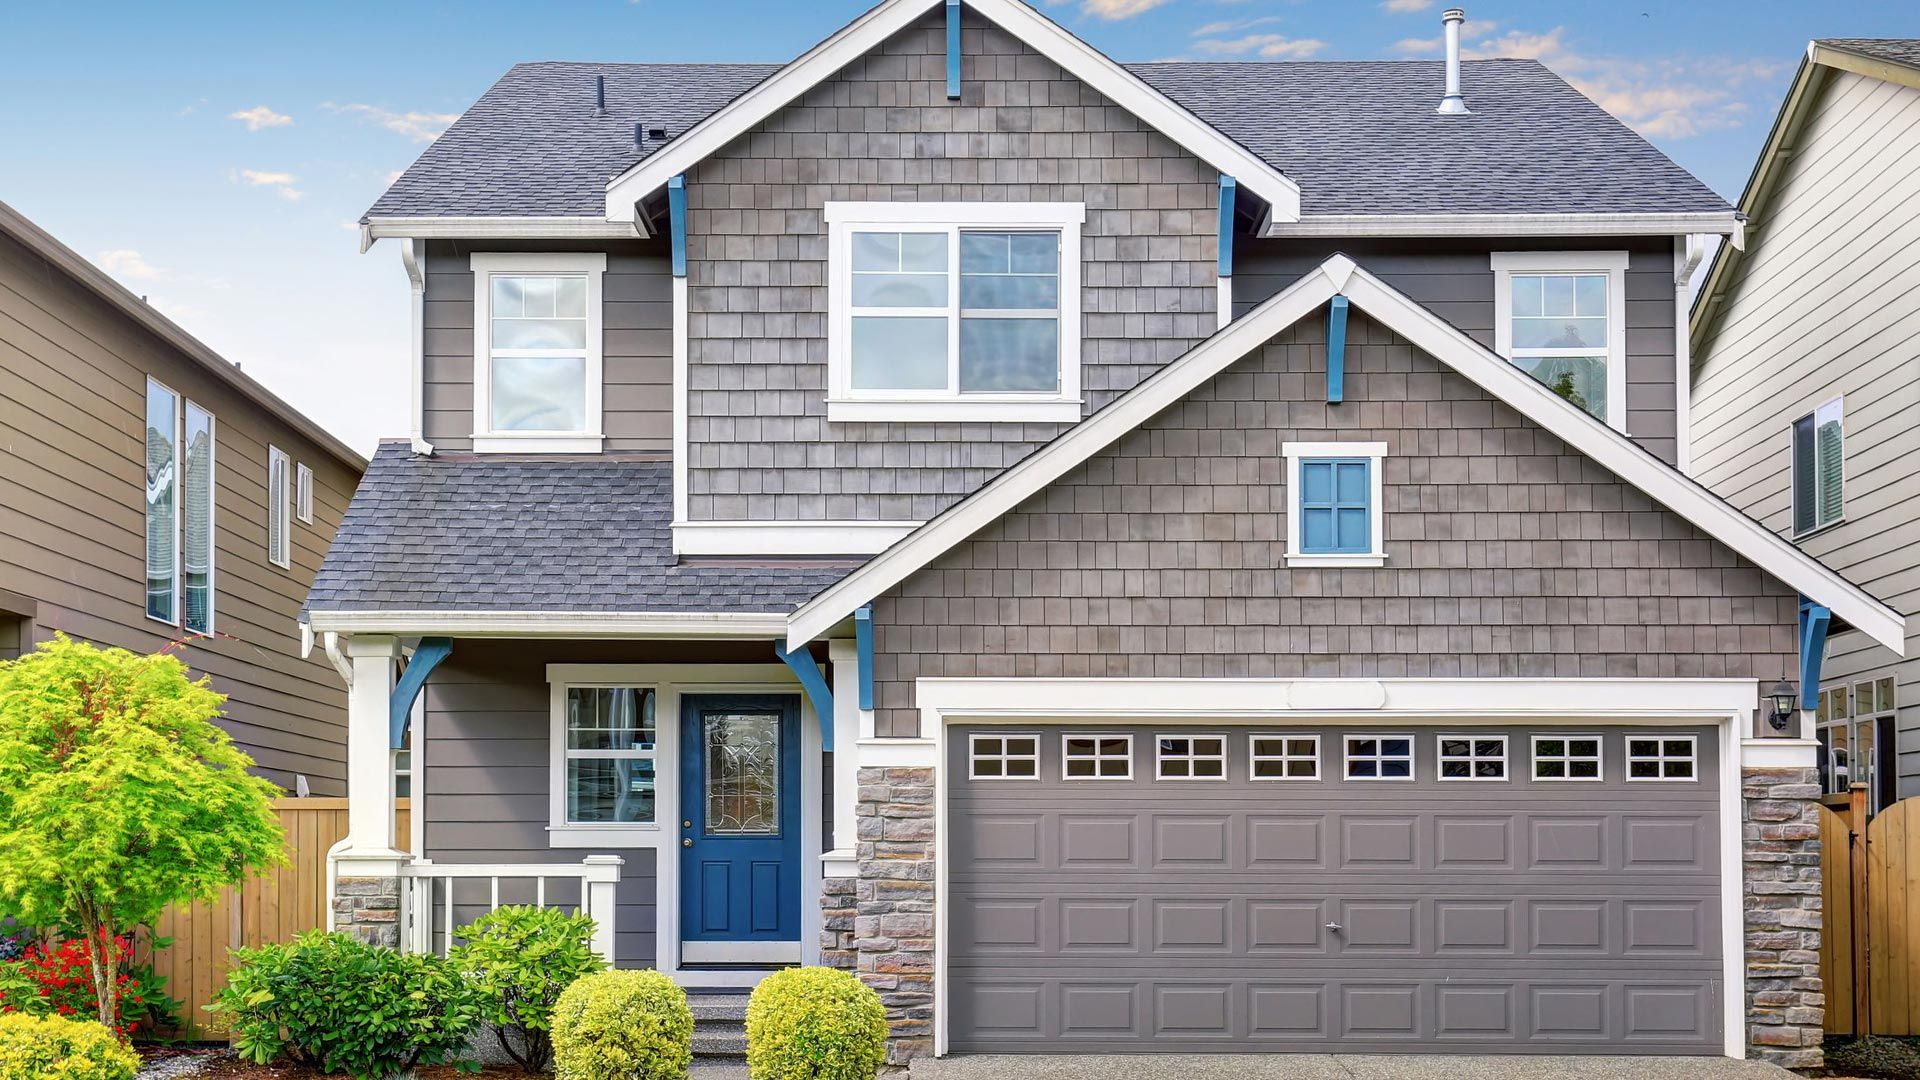 For millennials homeownership is more important than